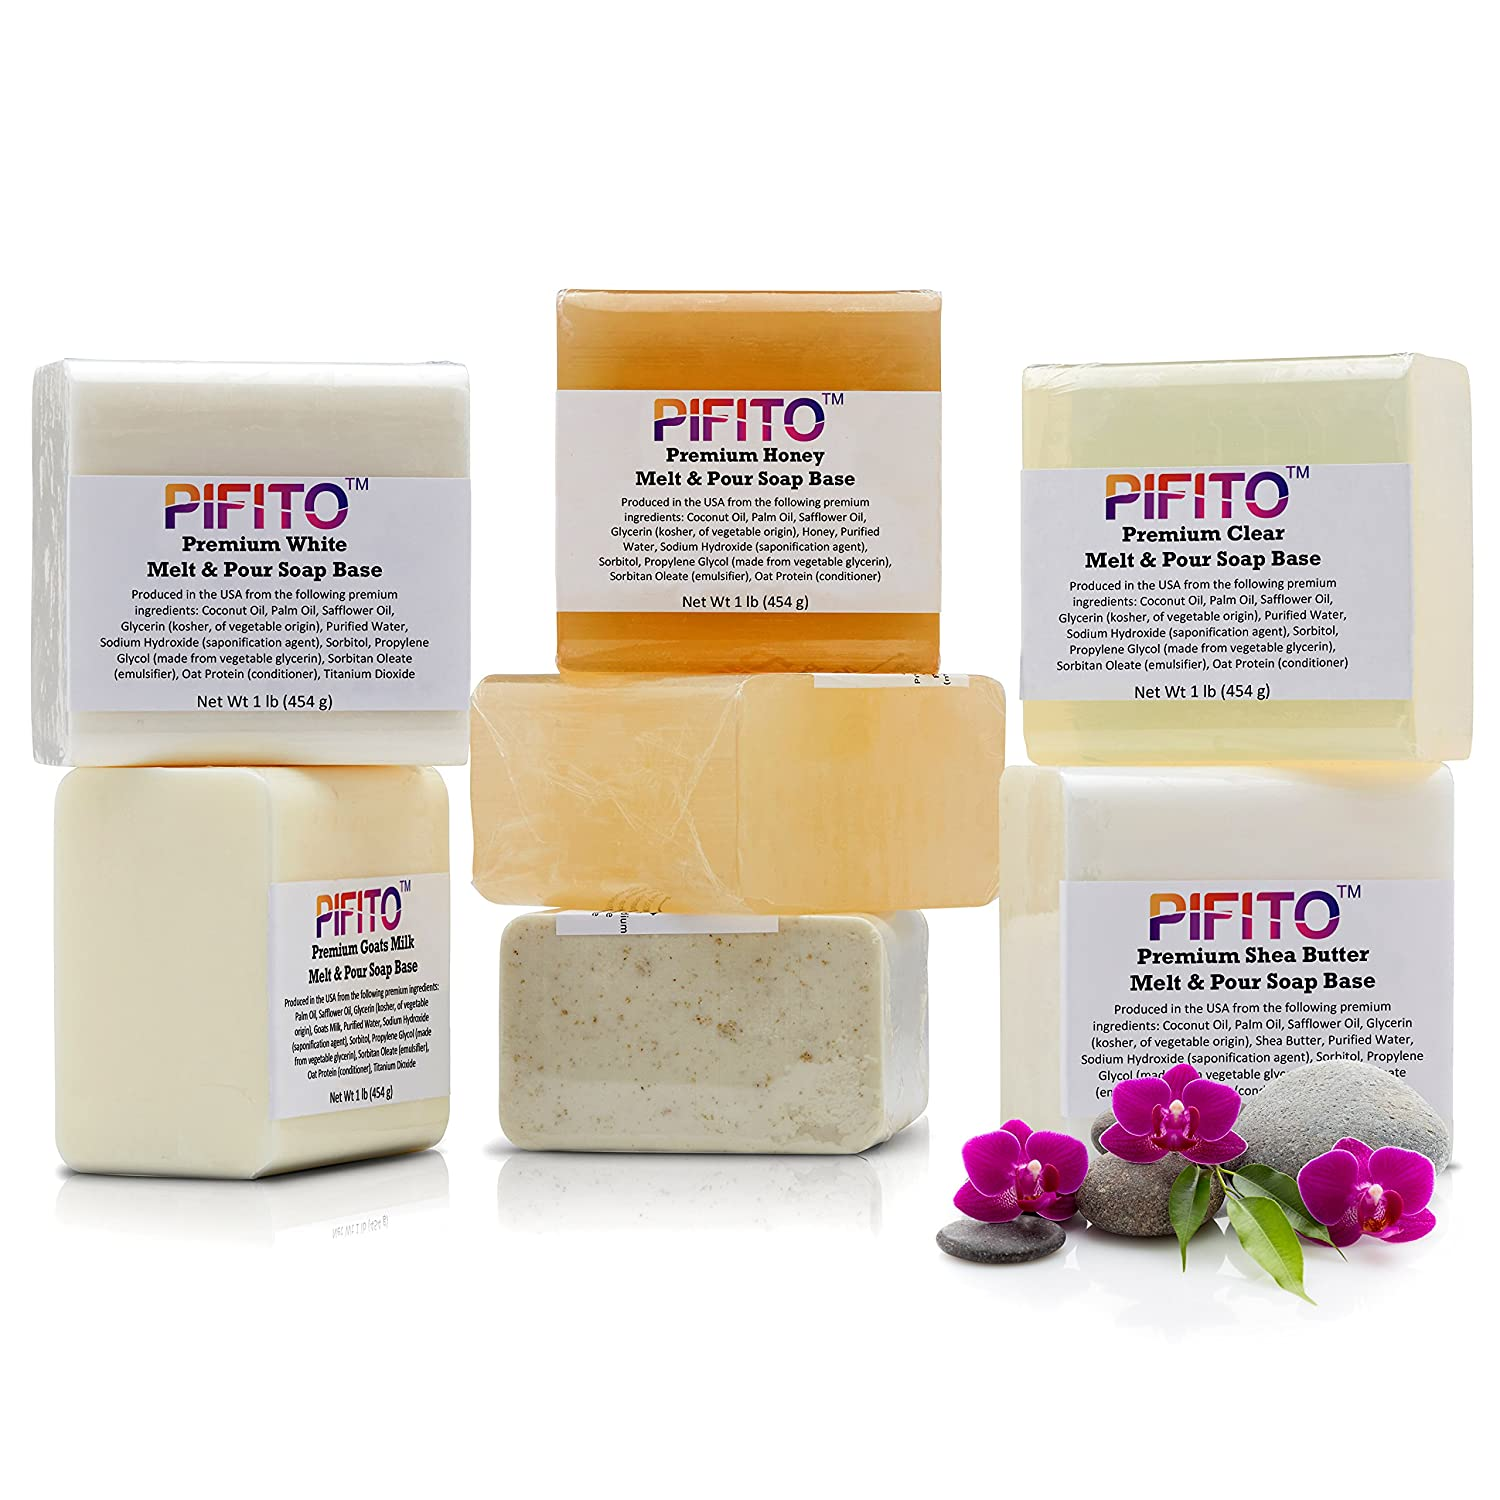 Pifito Premium Melt and Pour Soap Base Sampler - Assortment of 7 Bases (1lb ea); Clear, White, Goats Milk, Shea Butter, Oatmeal, Honey, Olive Oil - Total 7 lbs of Glycerin Hand Soap Making Supplies MPBSM1